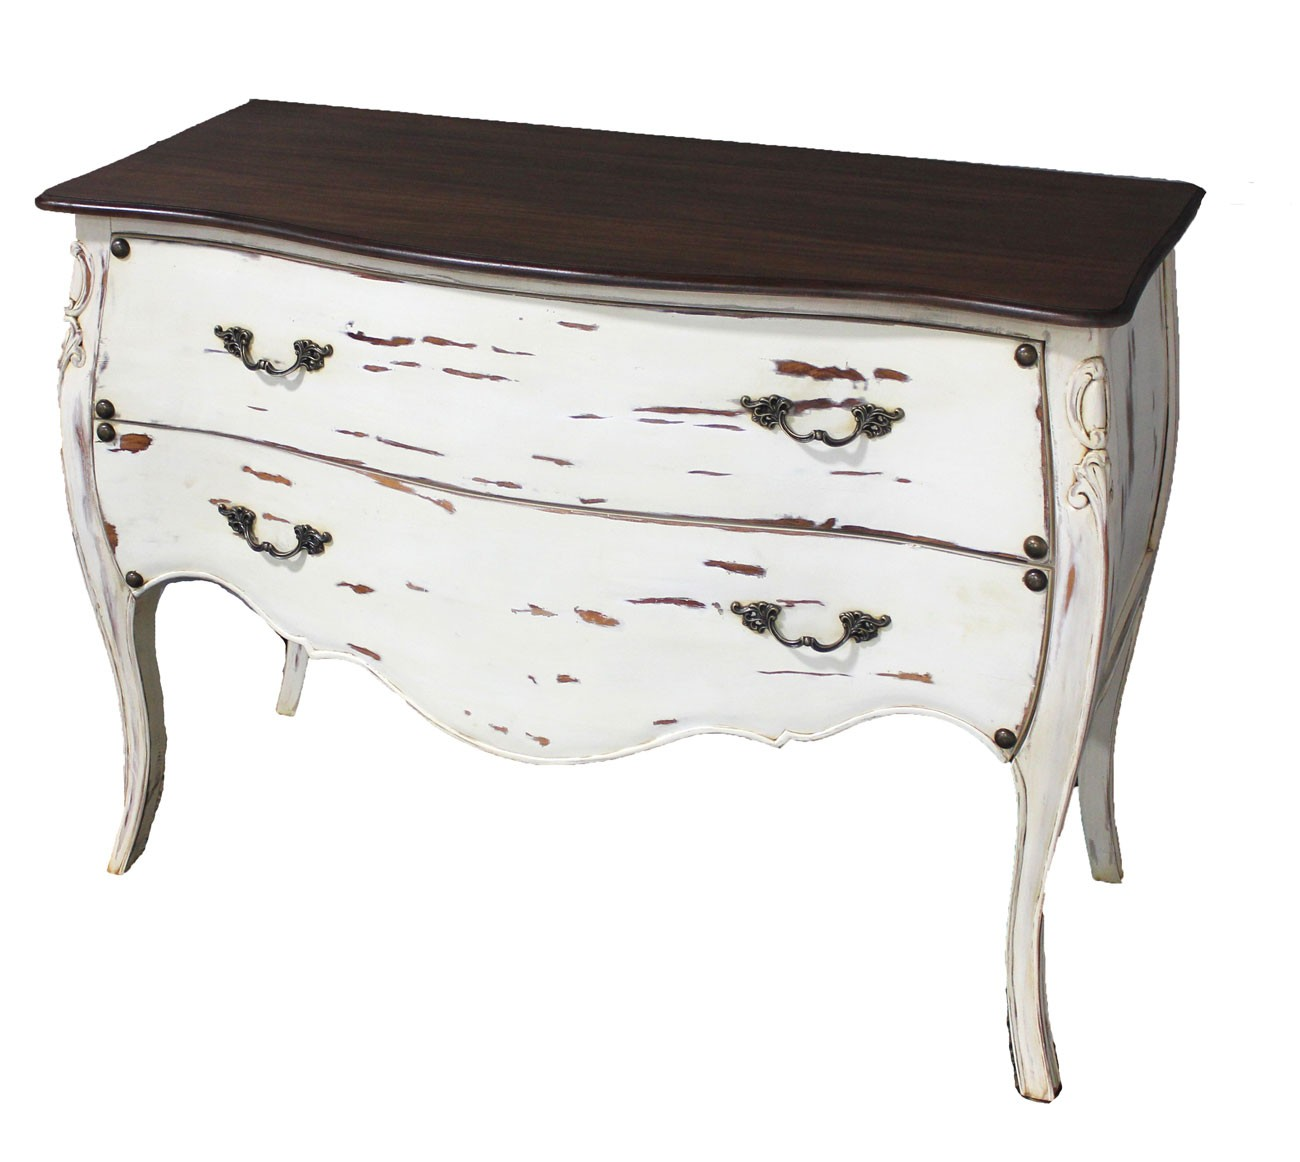 2 Drawer Distressed Bombay Chest